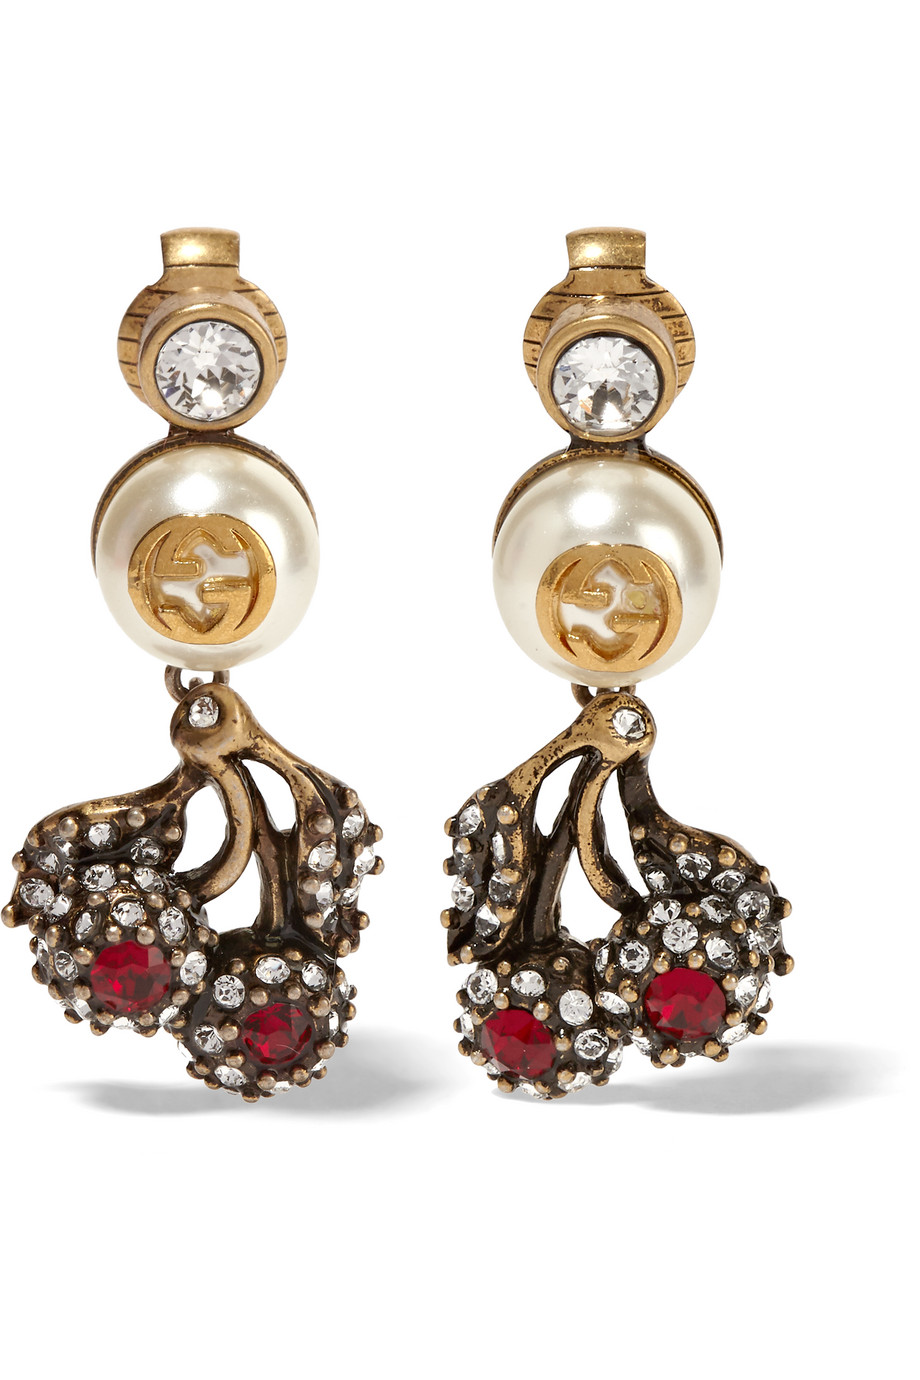 Gucci Ruthenium-Plated, Swarovski Crystal and Faux Pearl Earrings, Gold/White, Women's